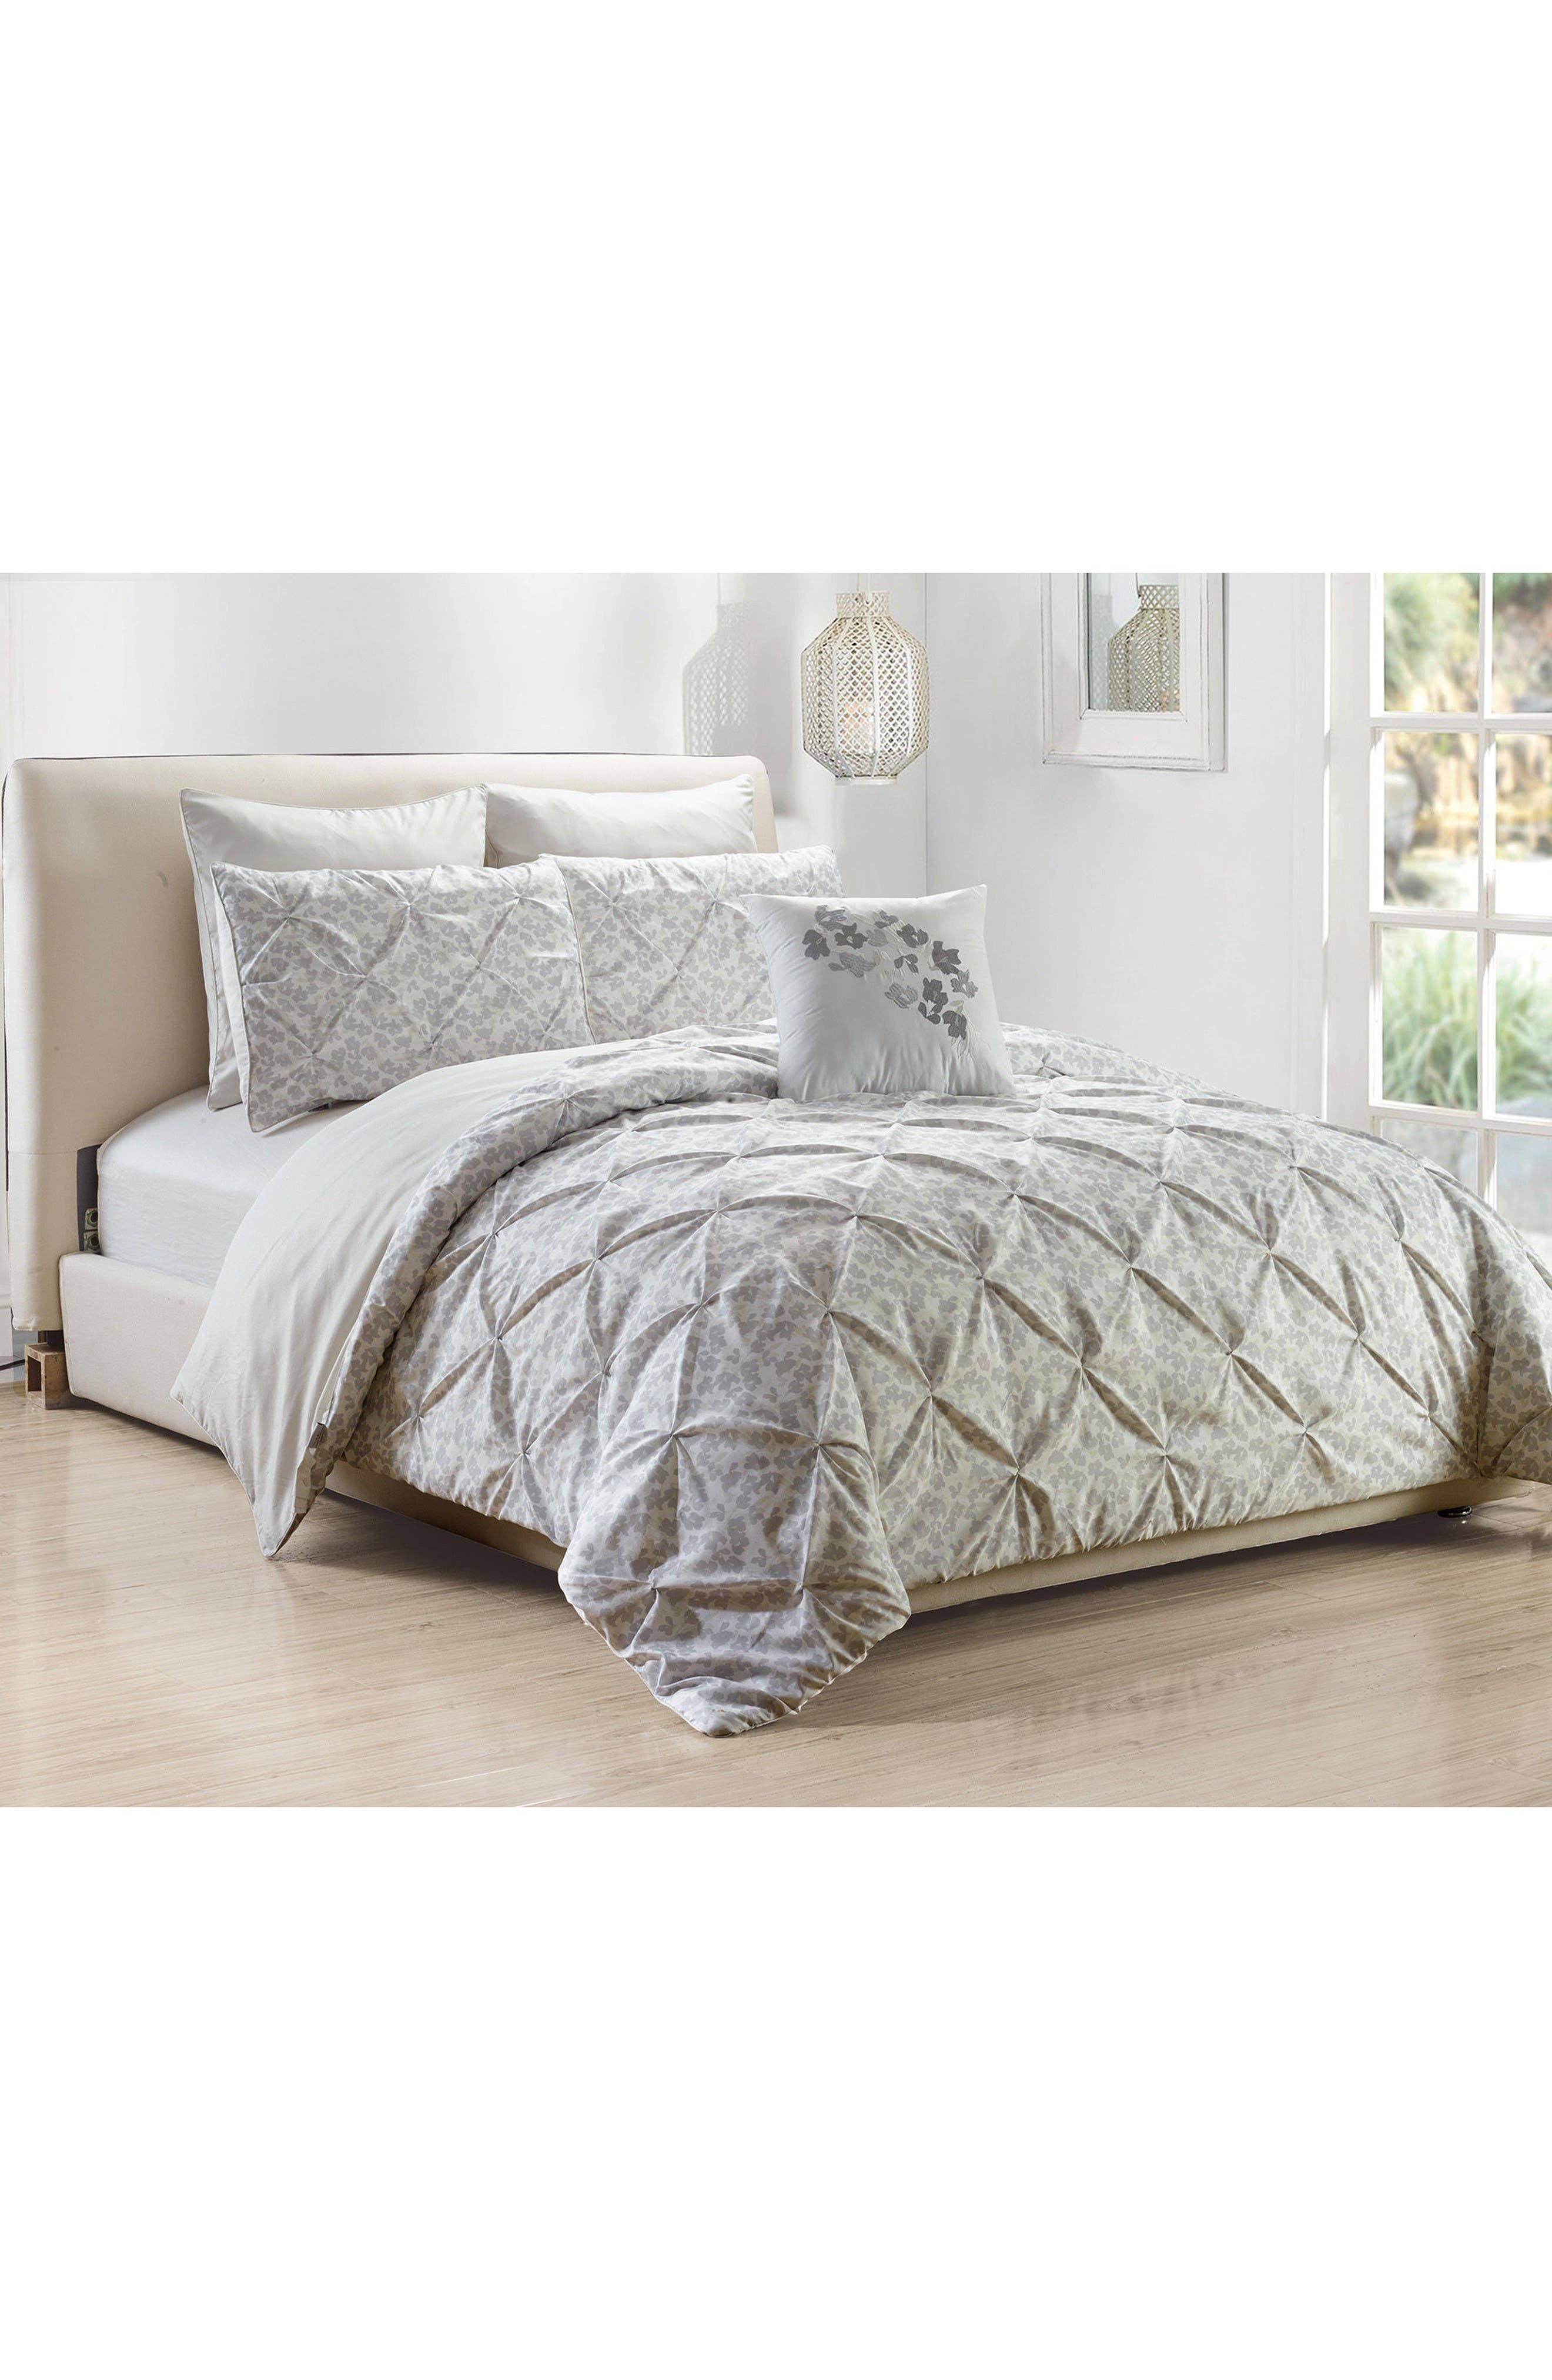 Adith 6-Piece King Comforter Set,                             Alternate thumbnail 3, color,                             Grey